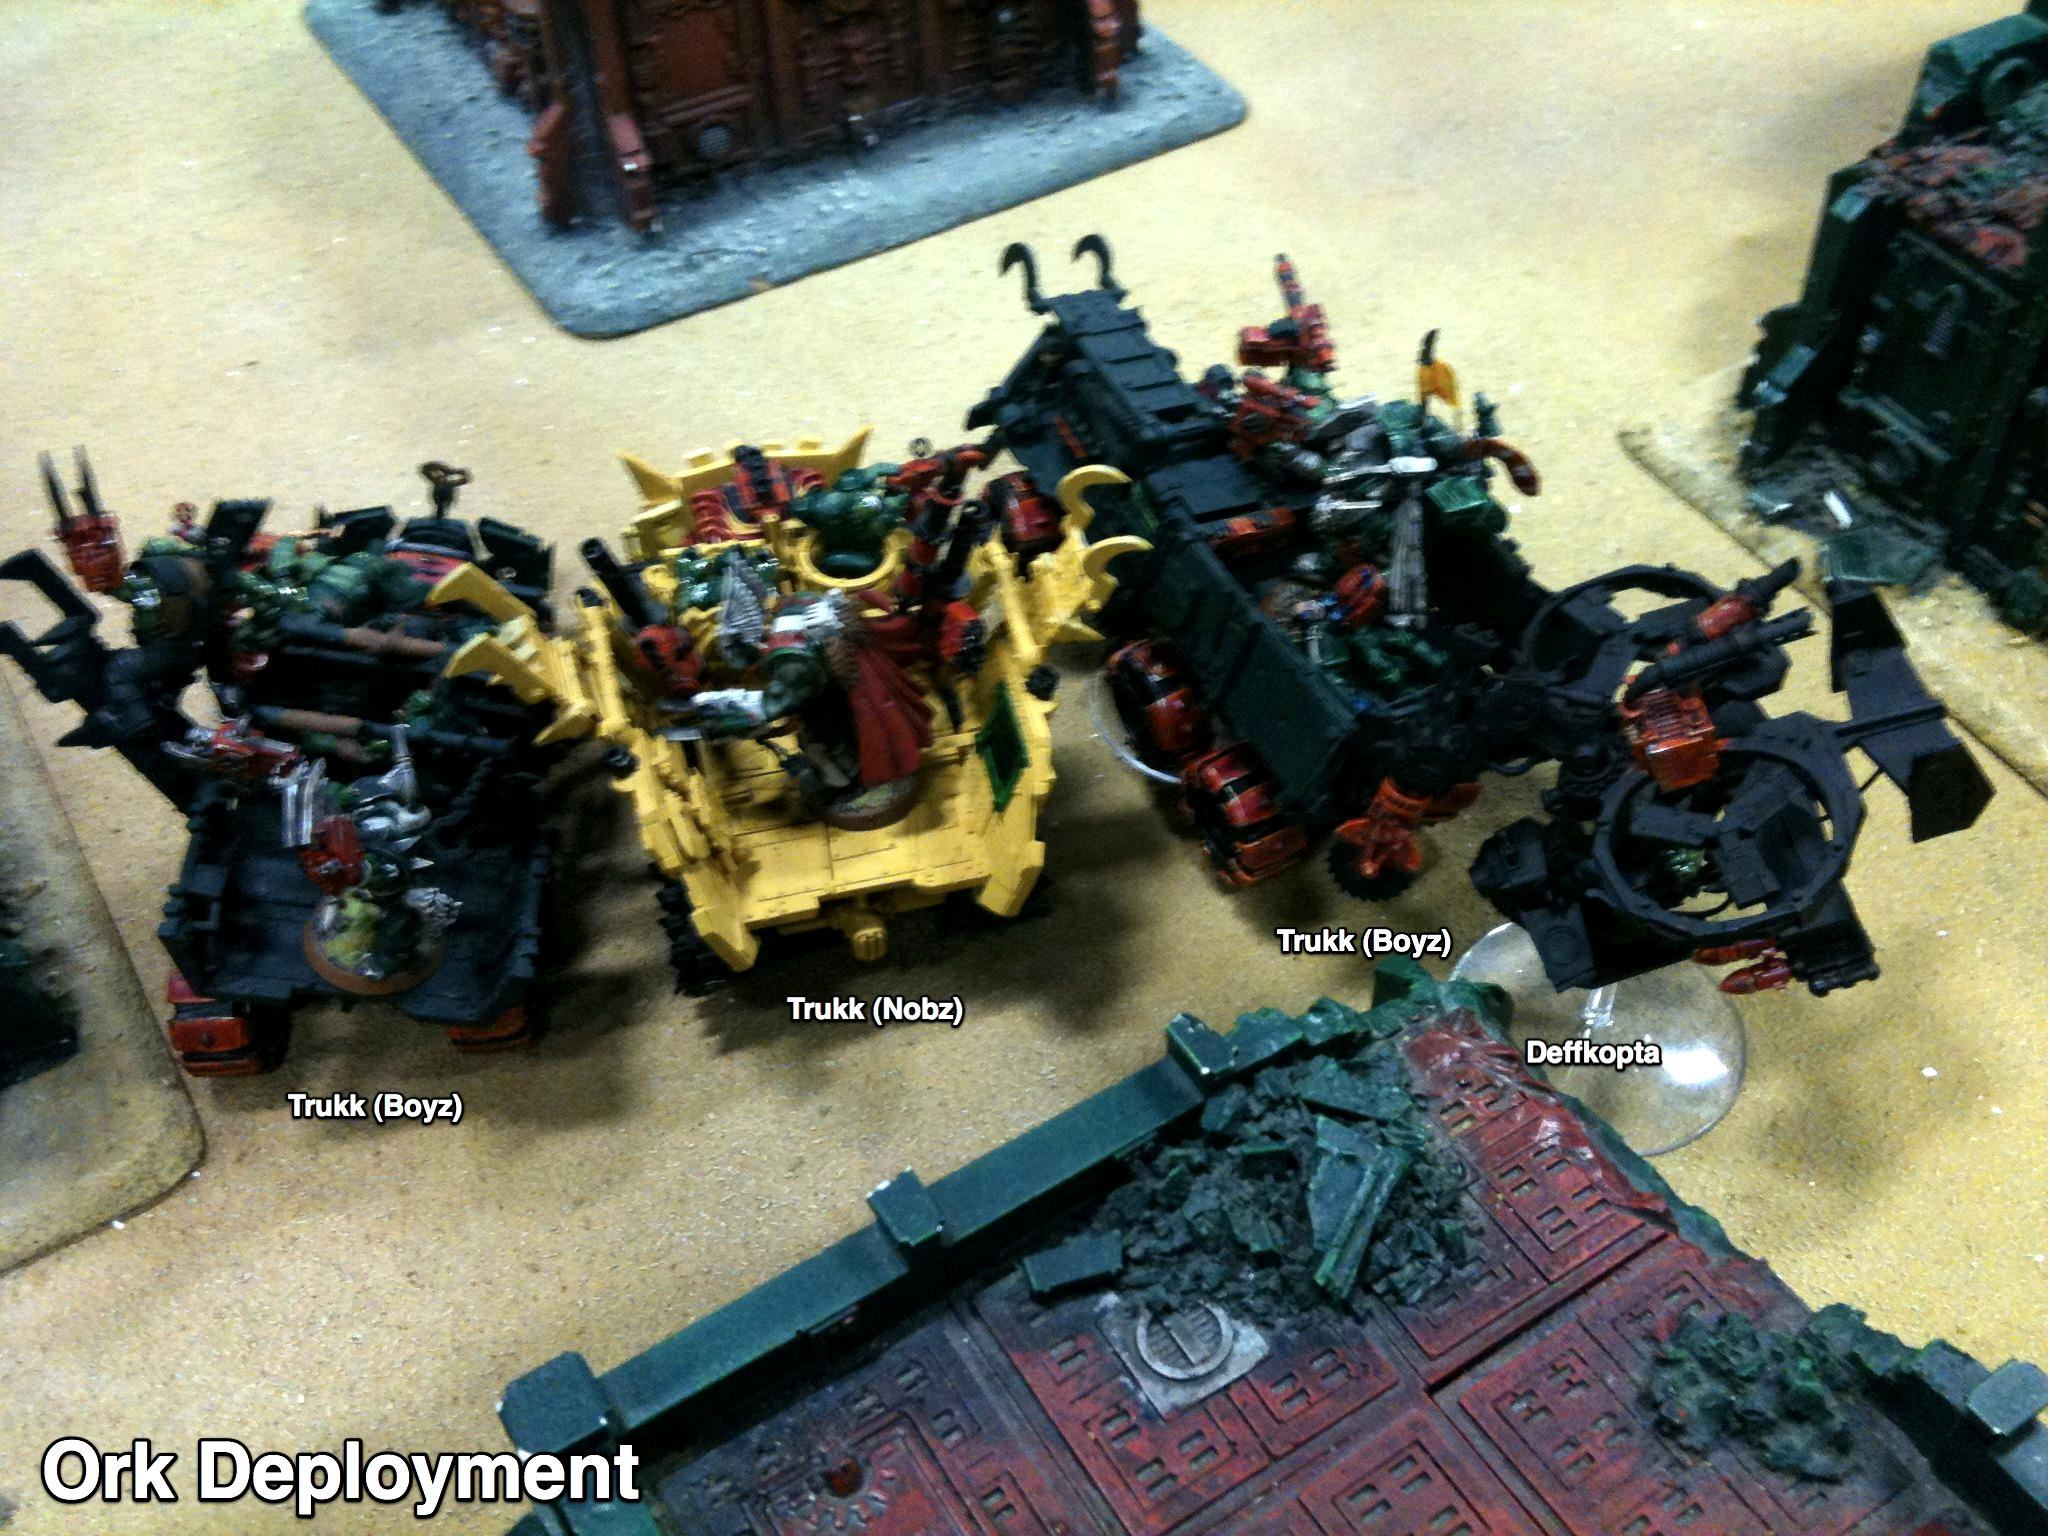 Battle Report, Da Ork Angelz, Imperial Guard, Malfian Ivth, Orks